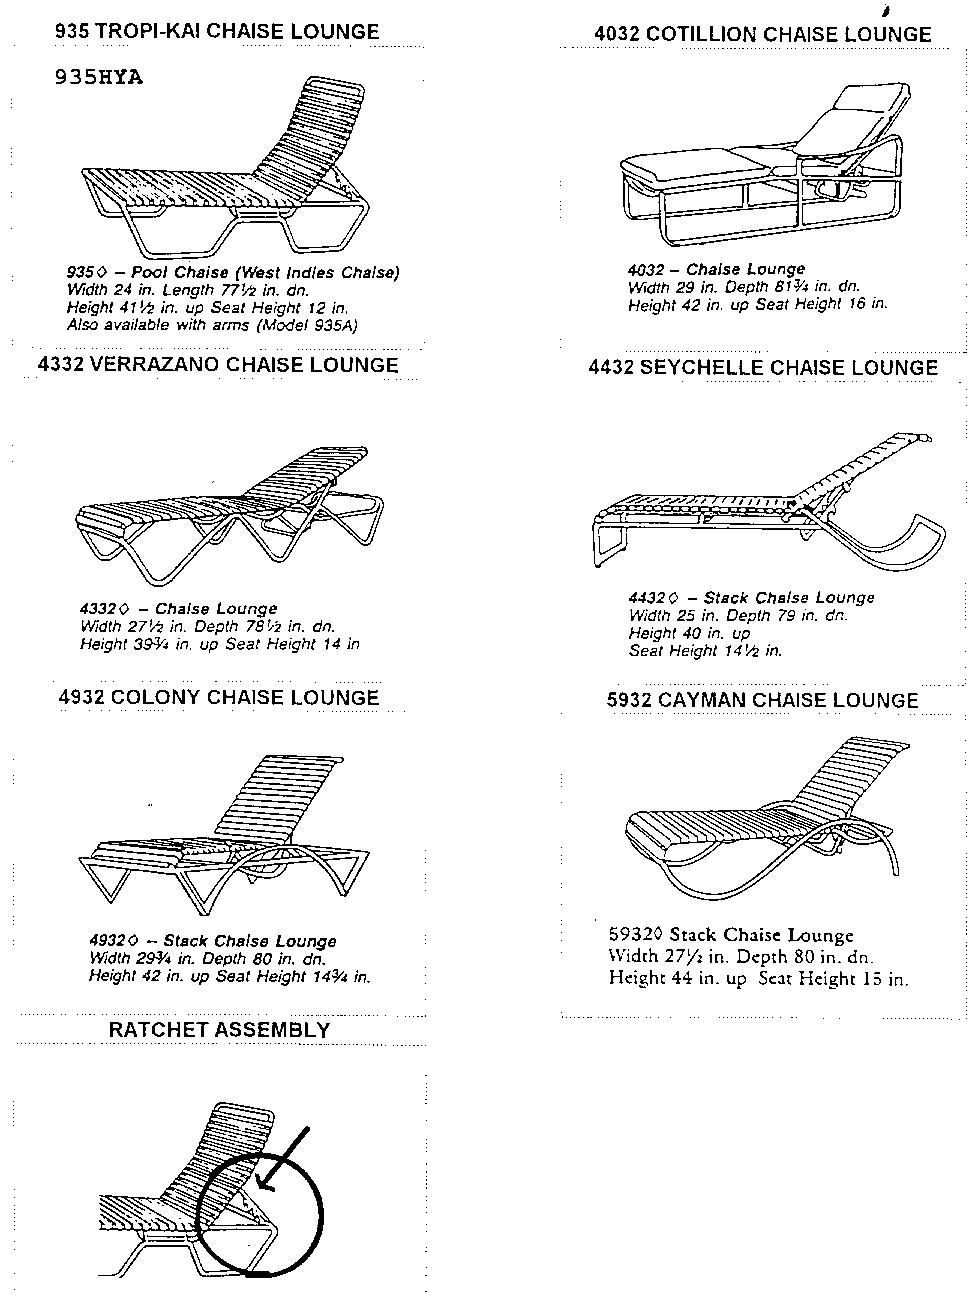 CPSC and Tropitone Announce Recall of Chaise Lounge Chairs | CPSC.